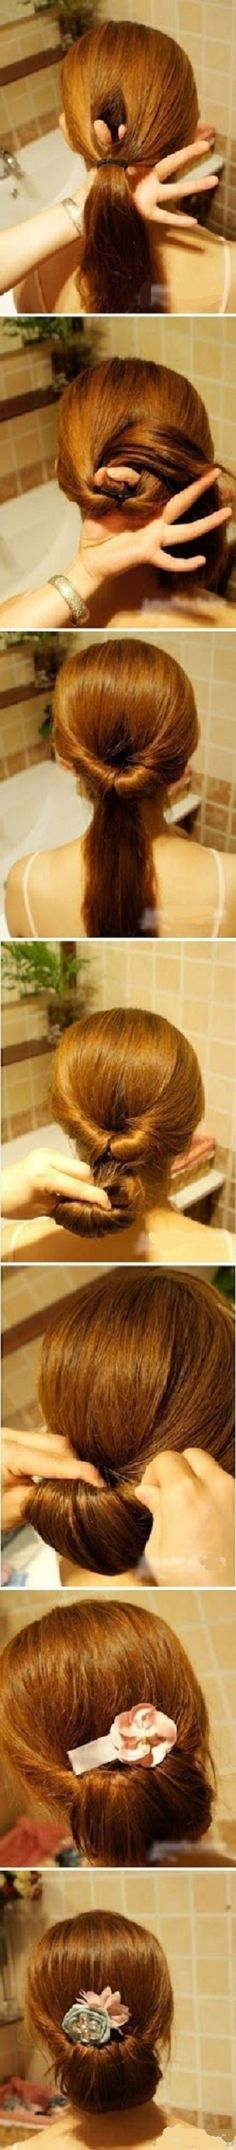 An Updated Chignon - Lazy Hair Day Summer Hairstyles, Up Hairstyles, Pretty Hairstyles, Wedding Hairstyles, Creative Hairstyles, Wedding Updo, Running Late Hairstyles, Interview Hairstyles, Easy Formal Hairstyles